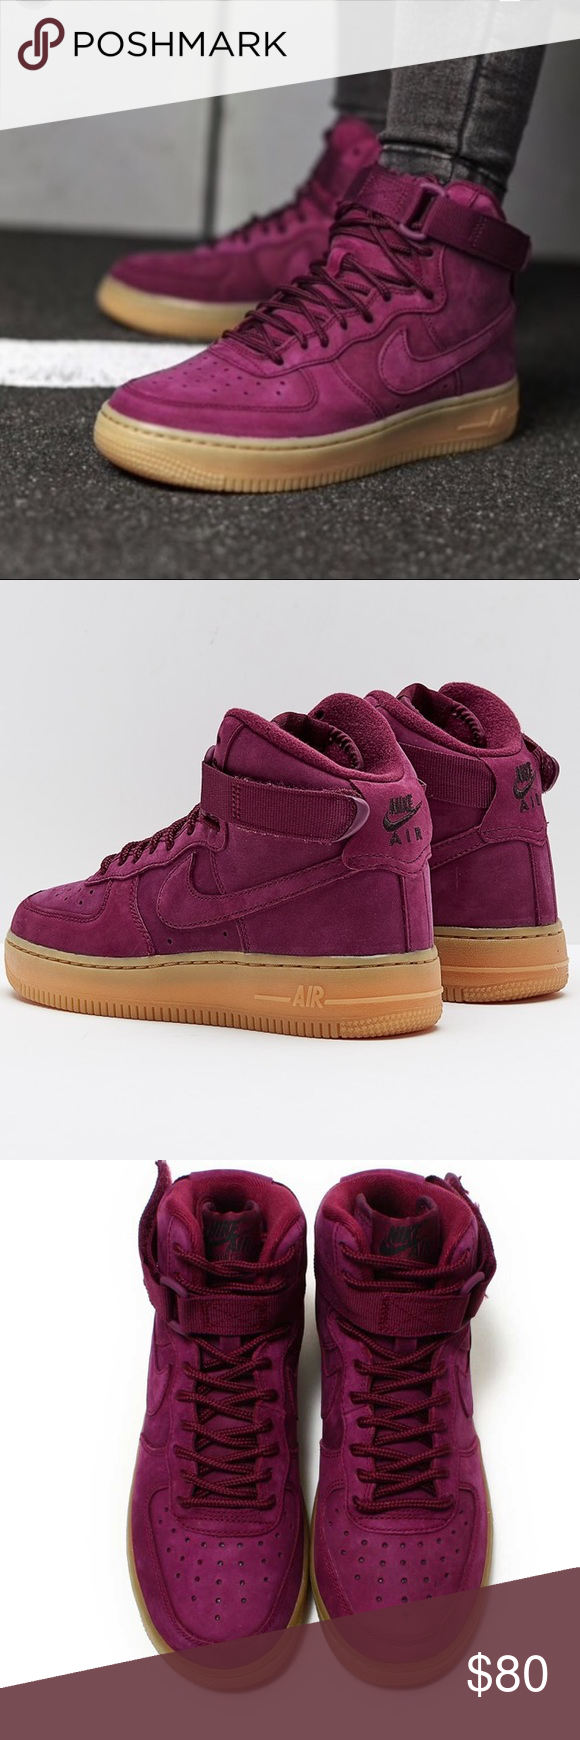 air force 1 donna bordeaux